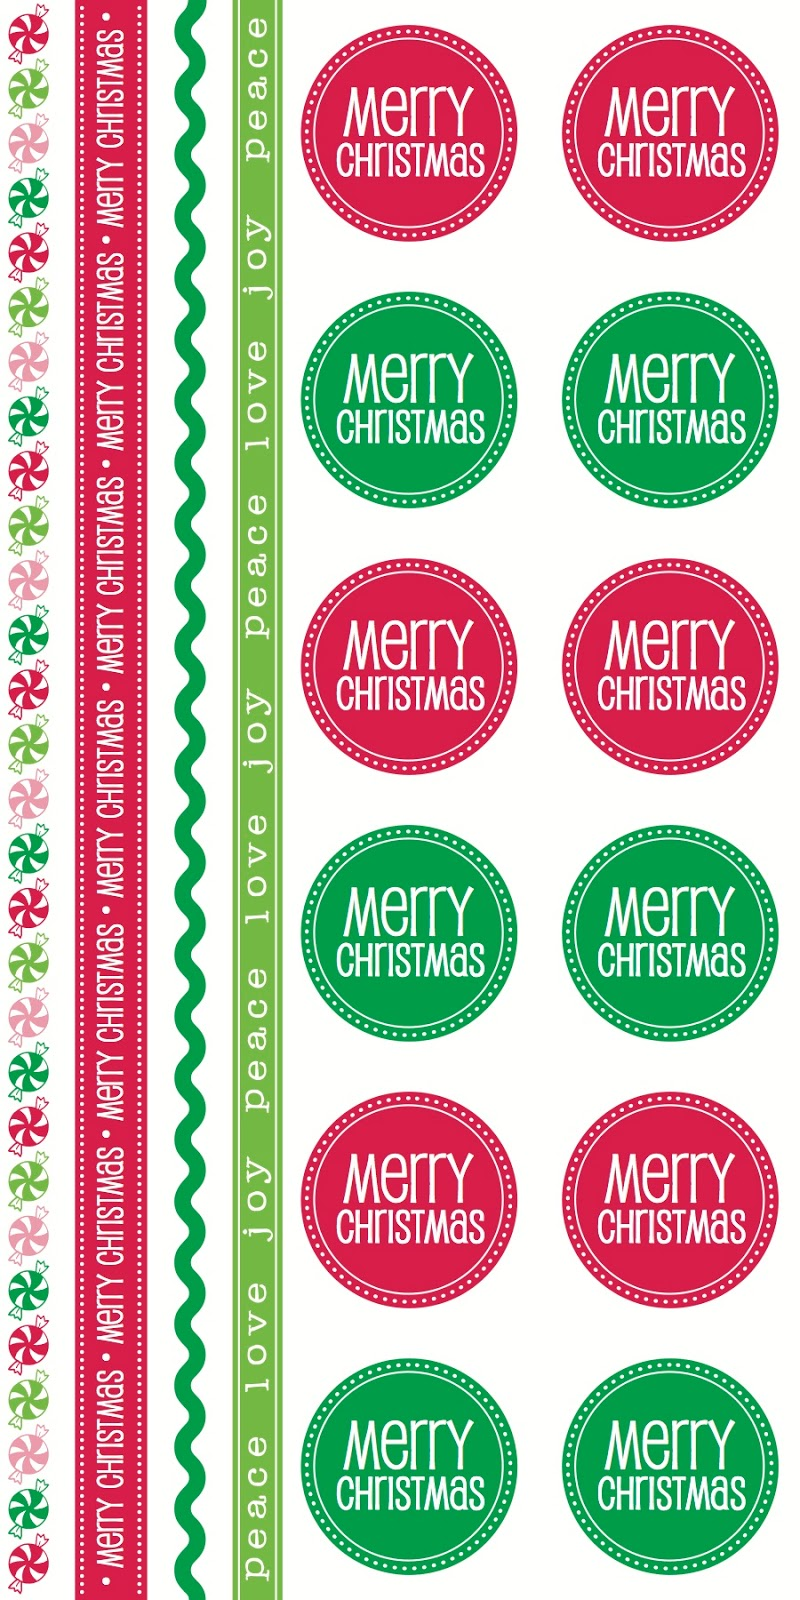 SRM Stickers BLog - New Product Reveal Stickers - #stickers #Take2 #Christmas